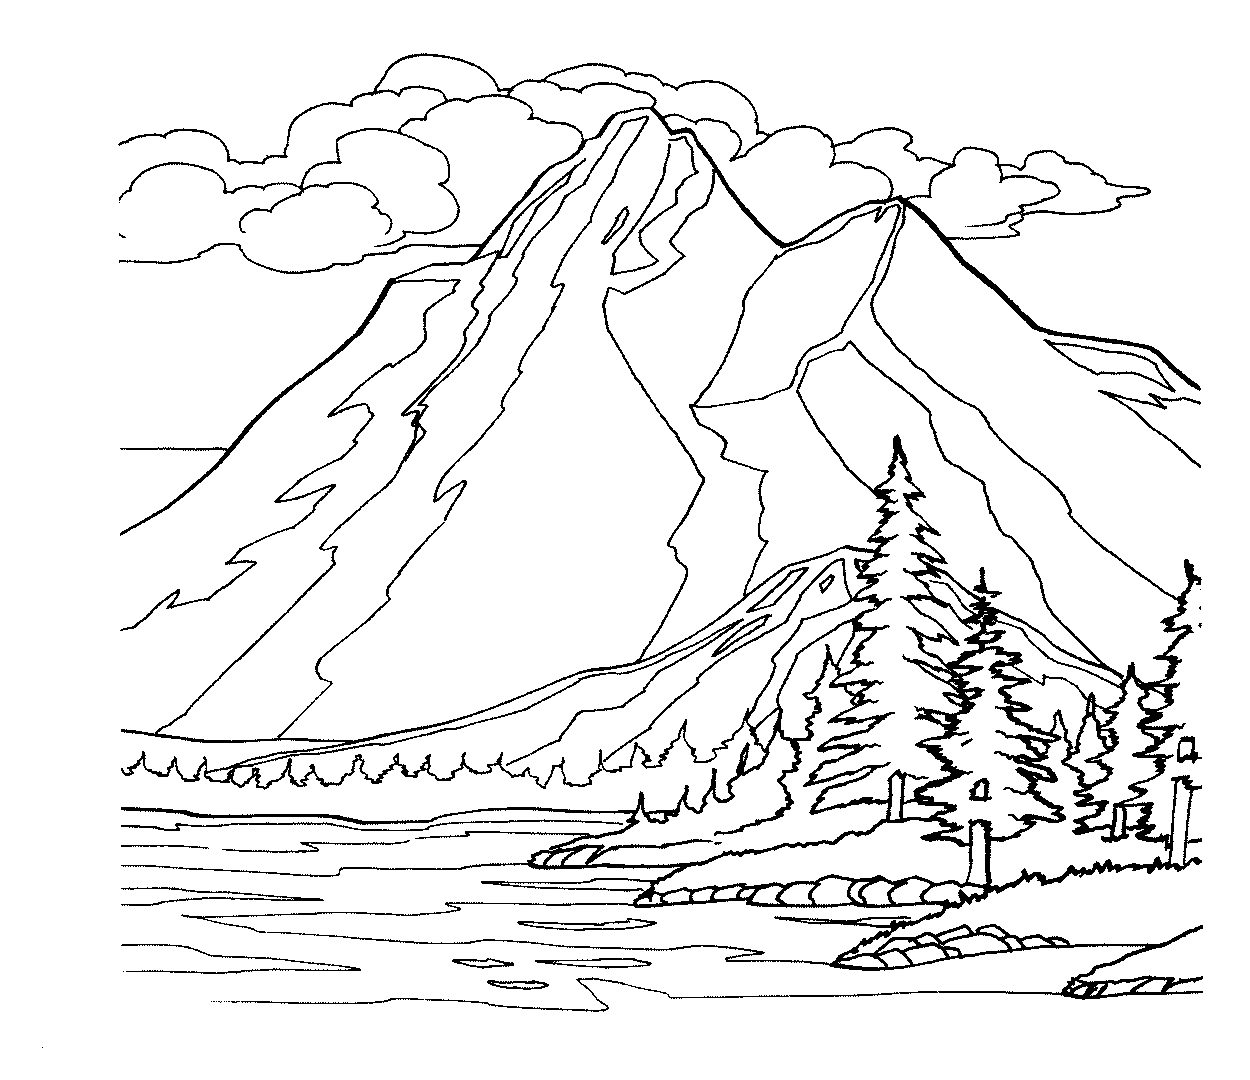 free coloring pages download mountain scene drawing at getdrawings free for personal use of mountain